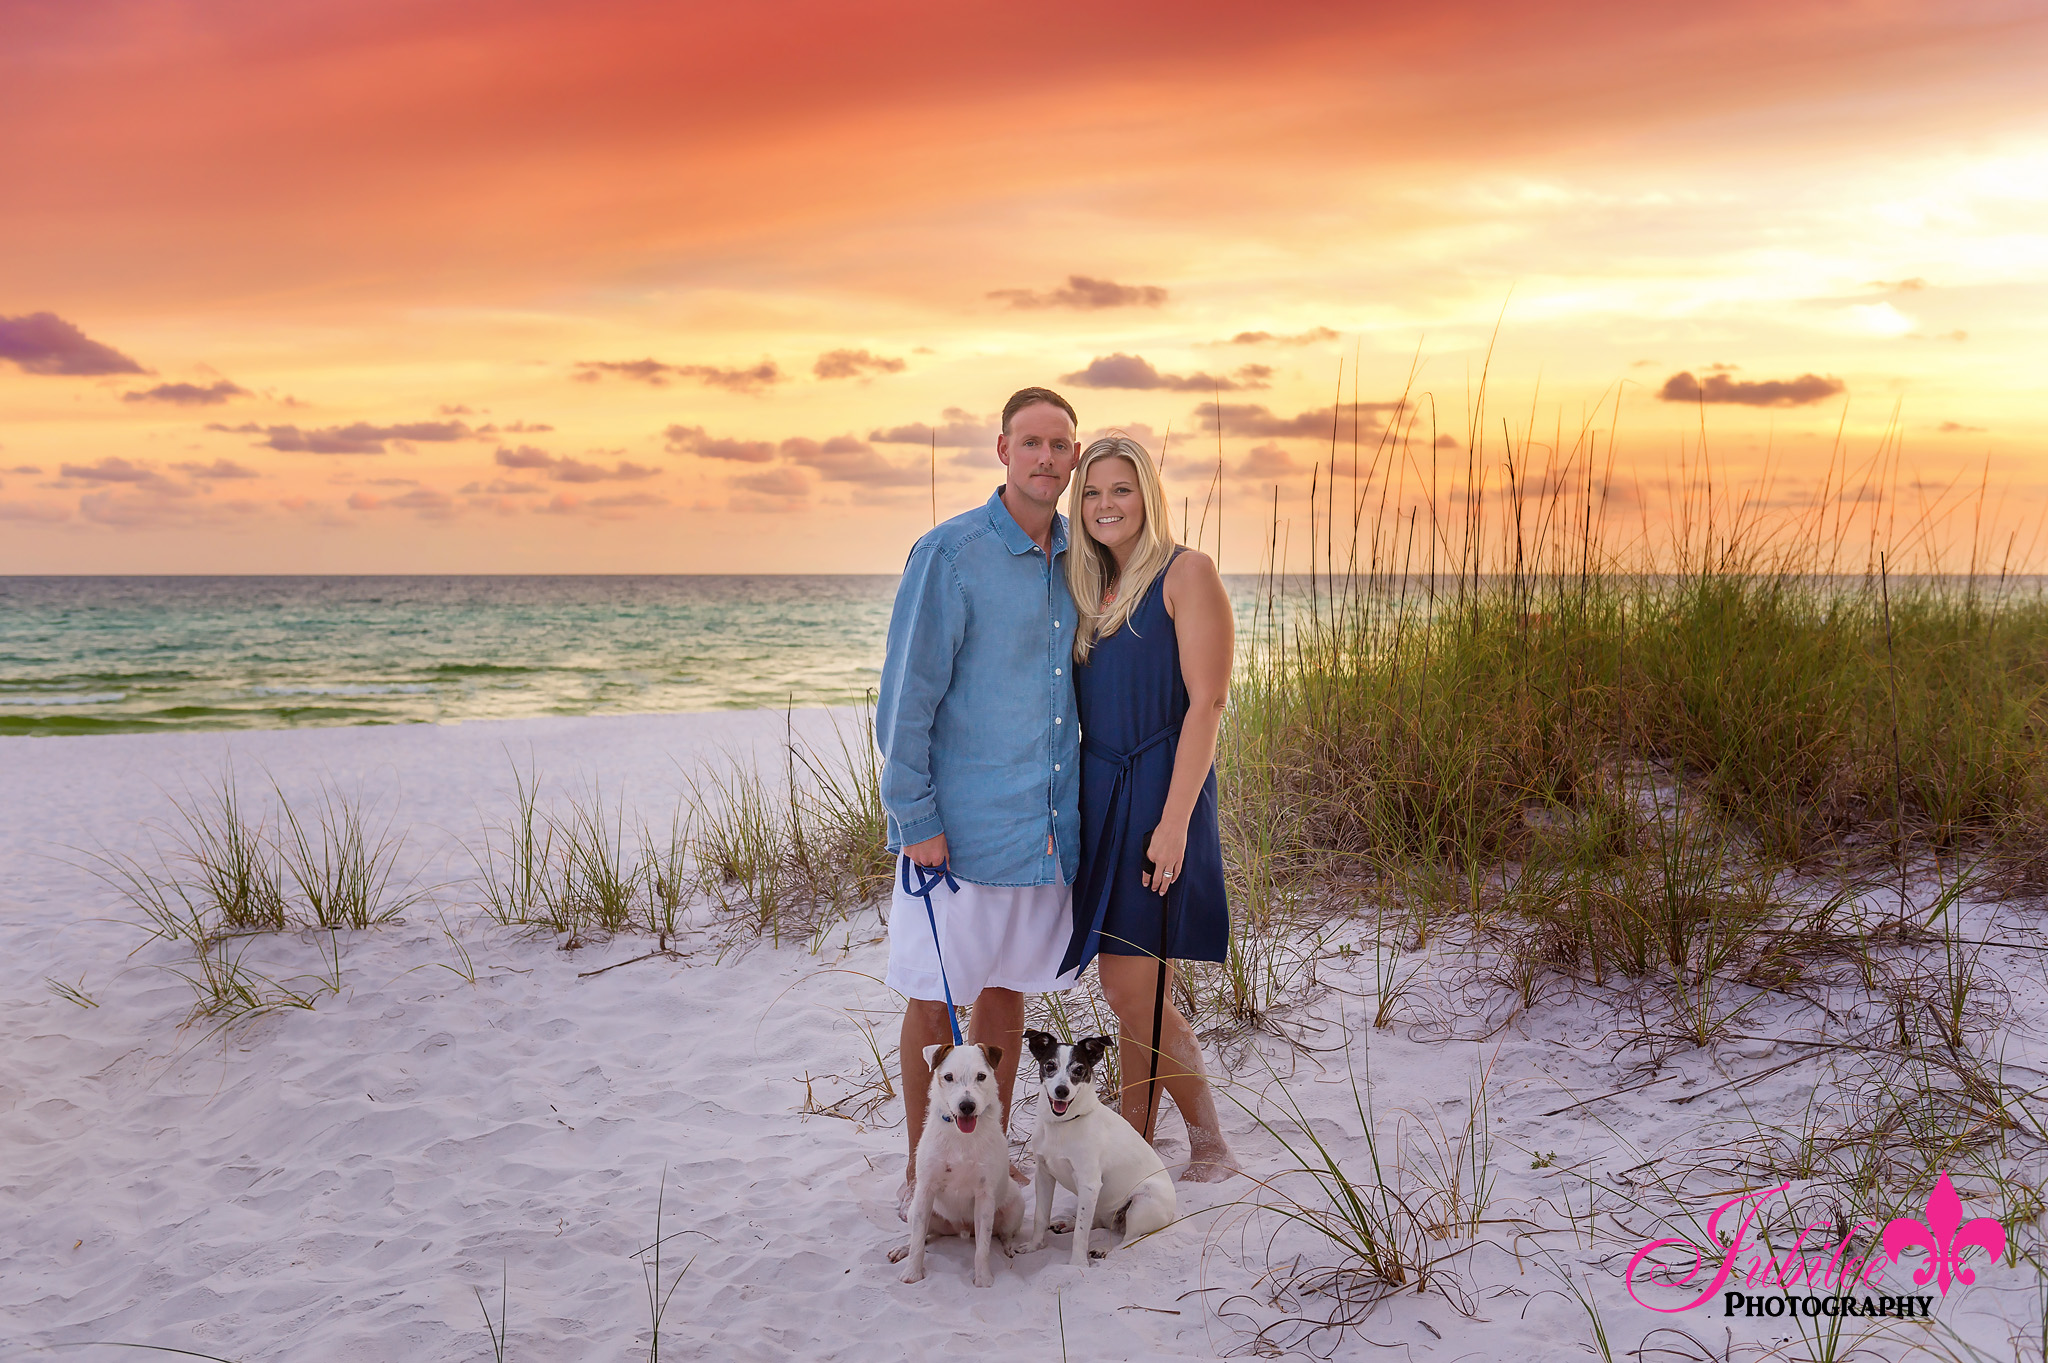 Destin_Photographer_7122